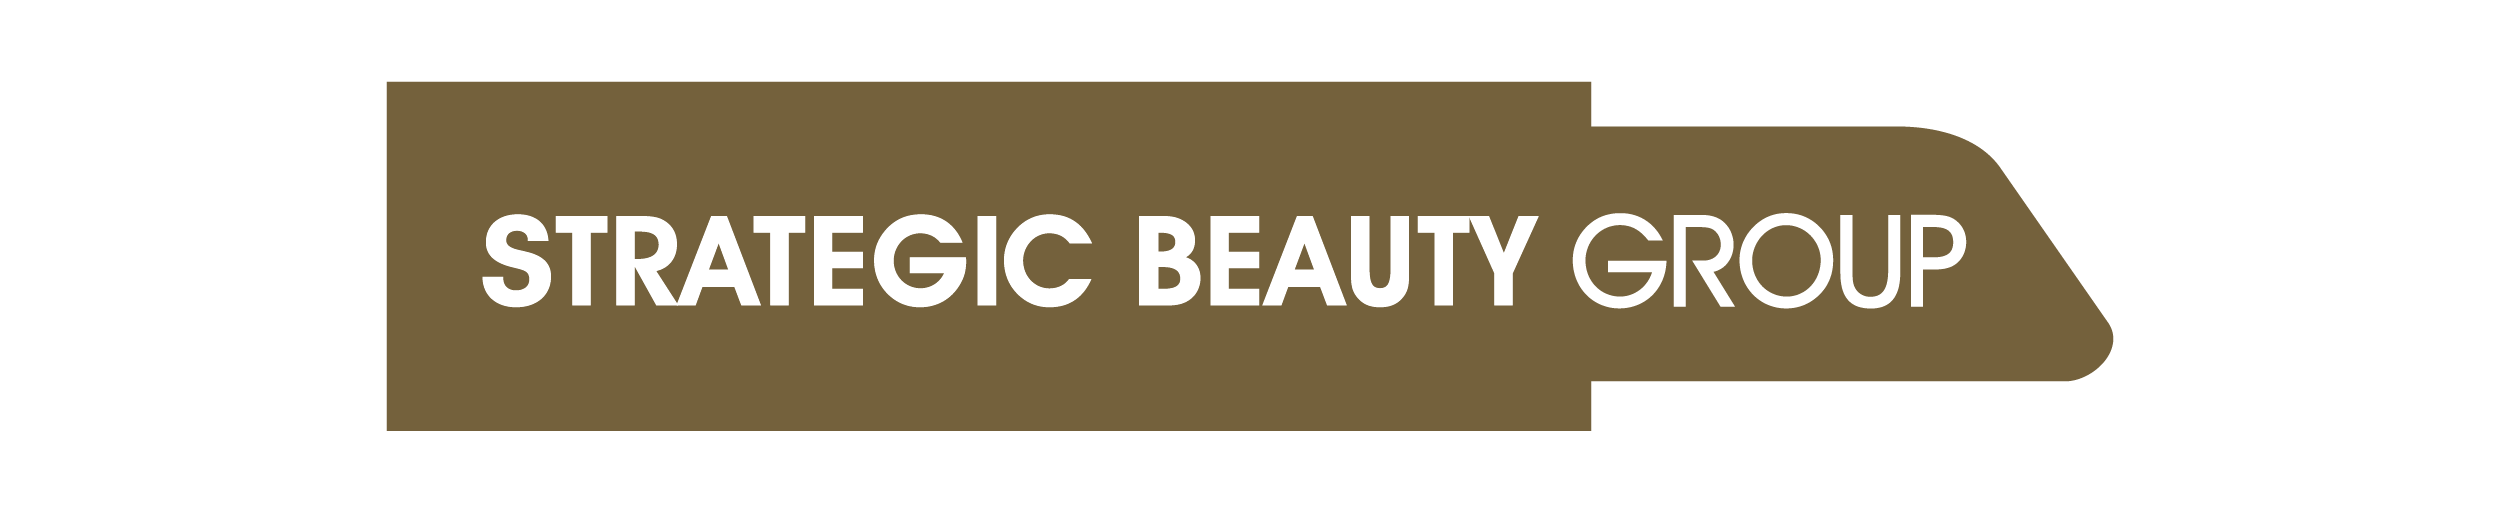 Strategic Beauty Group Cosmetics Industry Strategic Sourcing